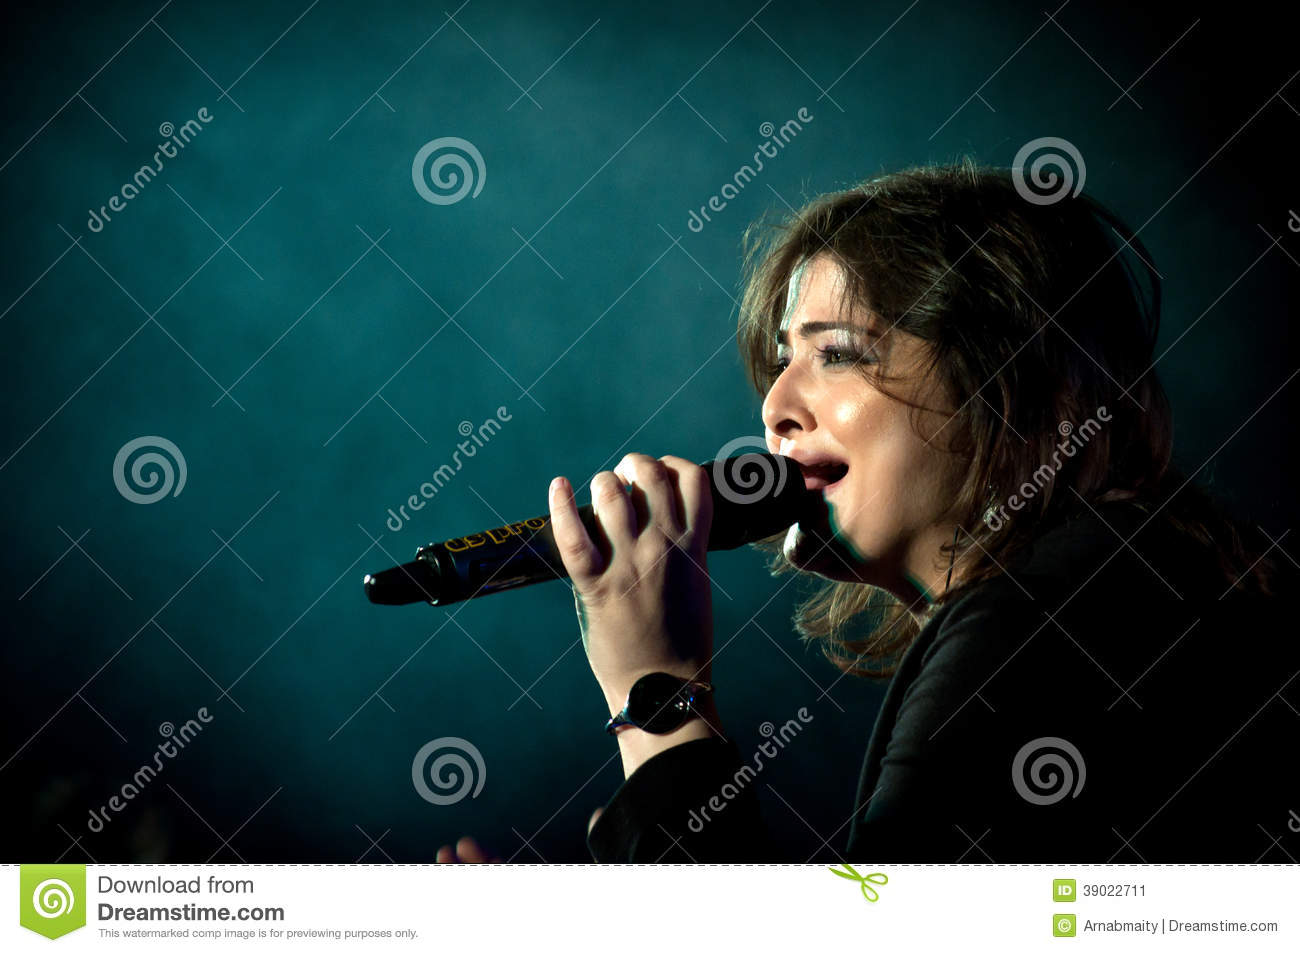 Indian Singer performing on stage